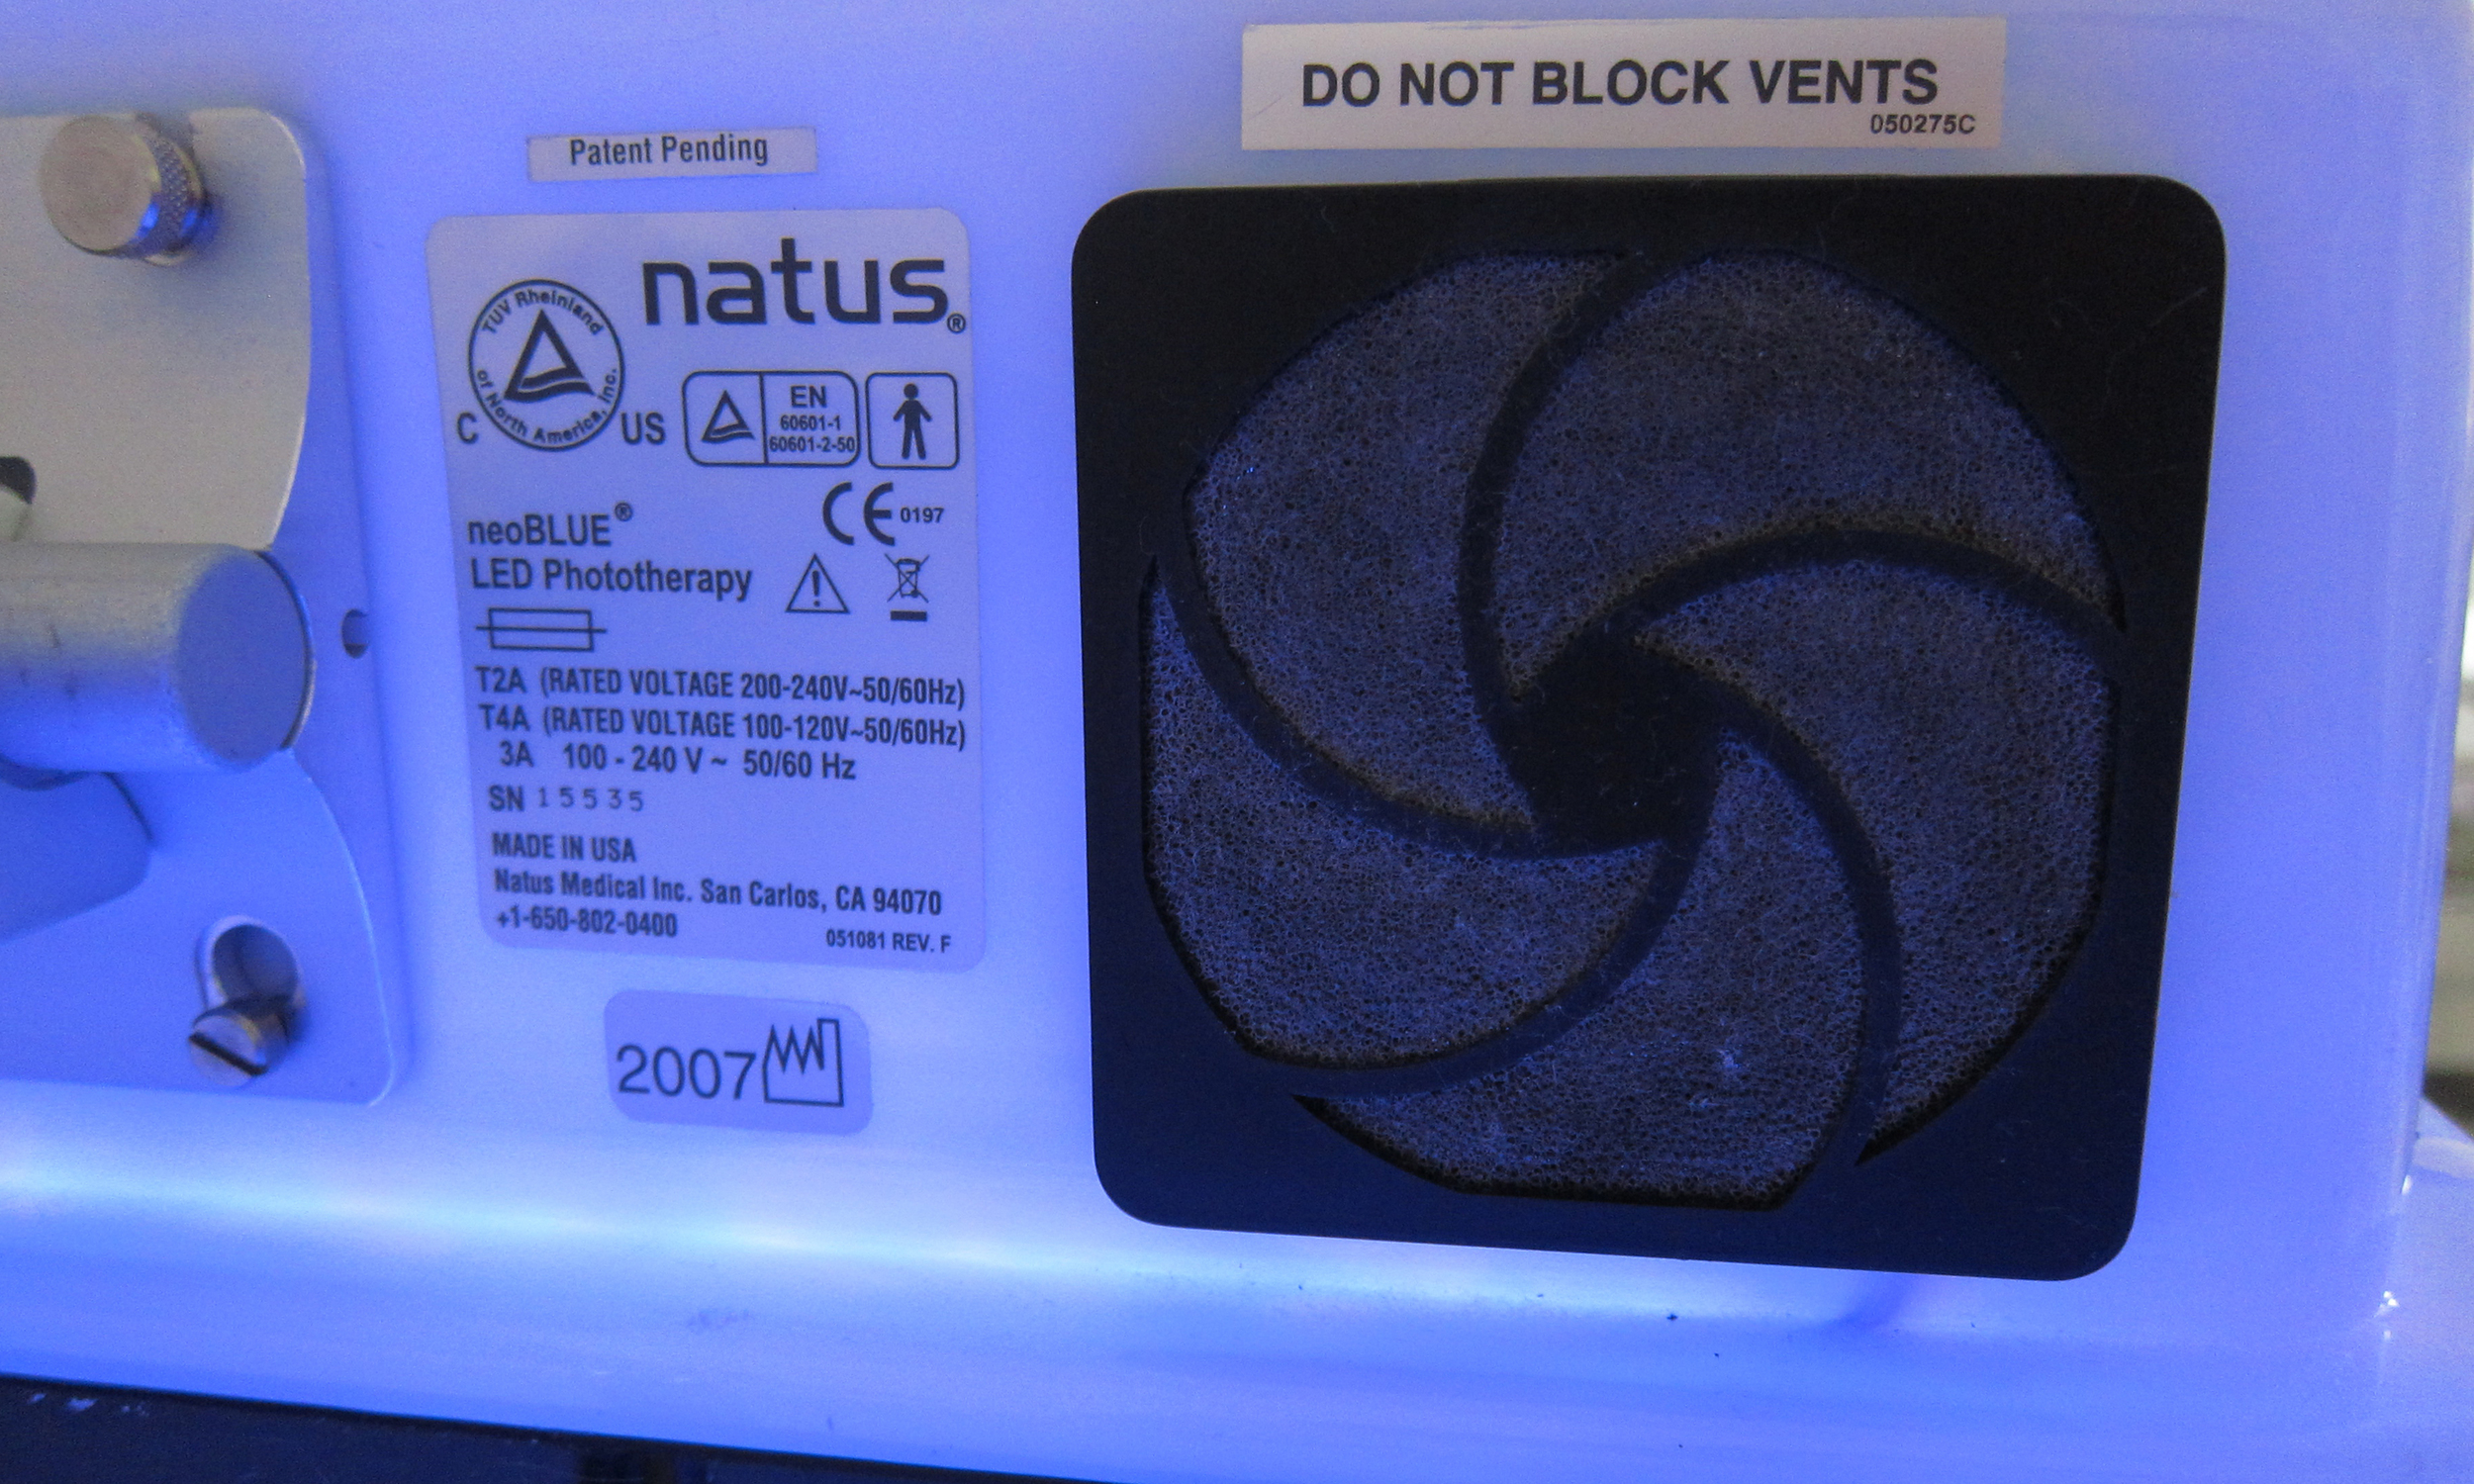 The vent for the Natus NeoBlue LED Overhead Phototherapy, one of the most popular phototherapy devices used in the United States. An internal fan helps move air through this vent to cool the electronics.